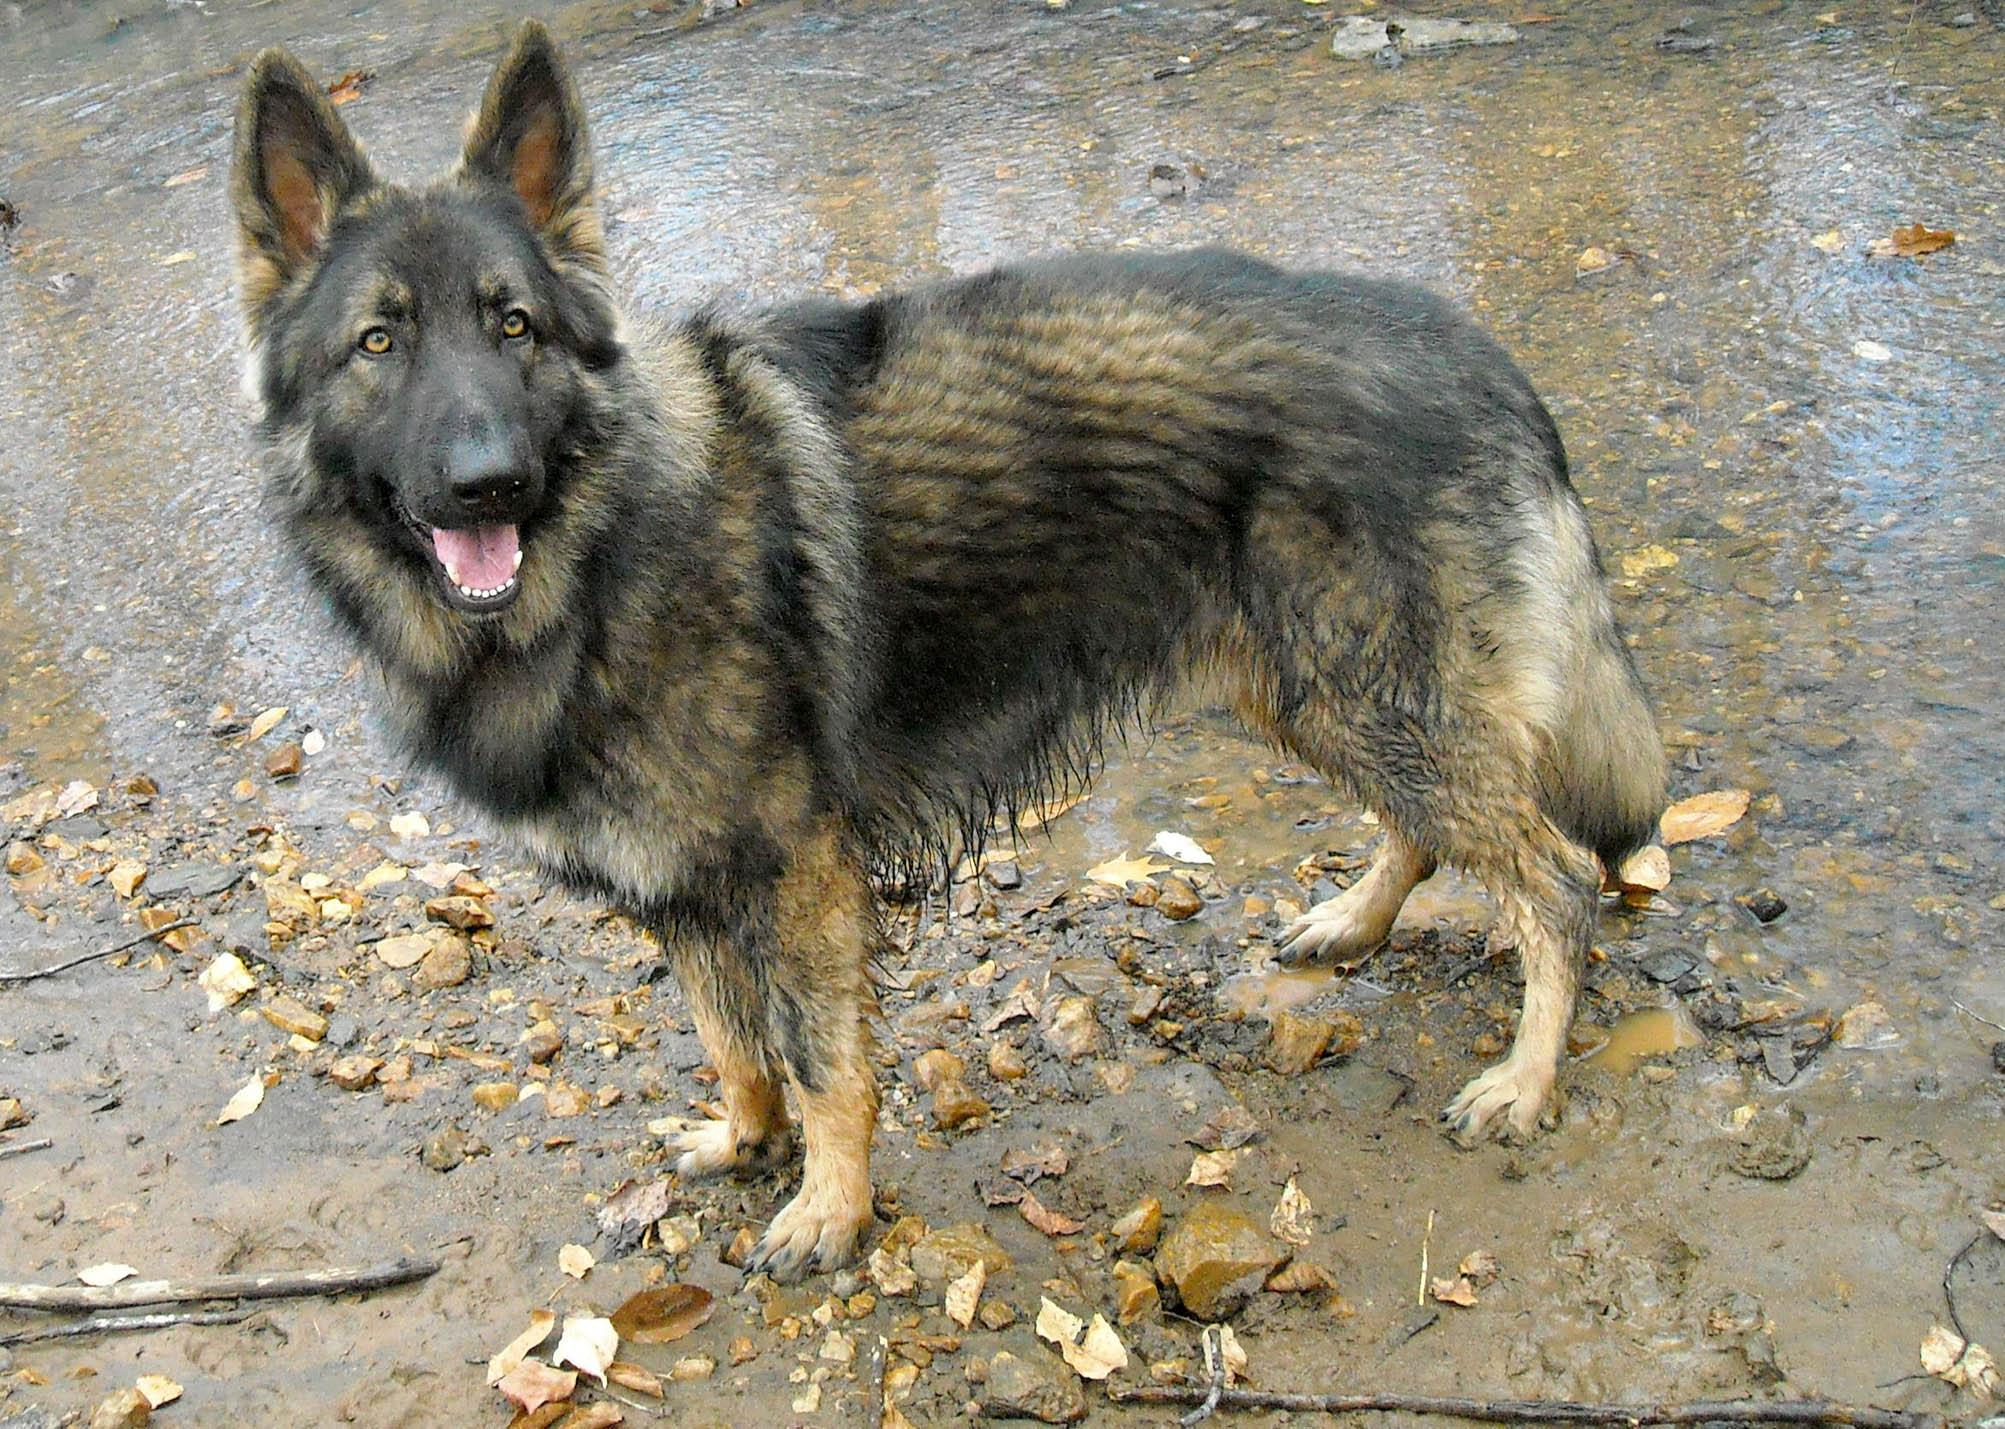 Shiloh Shepherd Dog: Shiloh Shiloh Shepherd Dog On The Road Breed